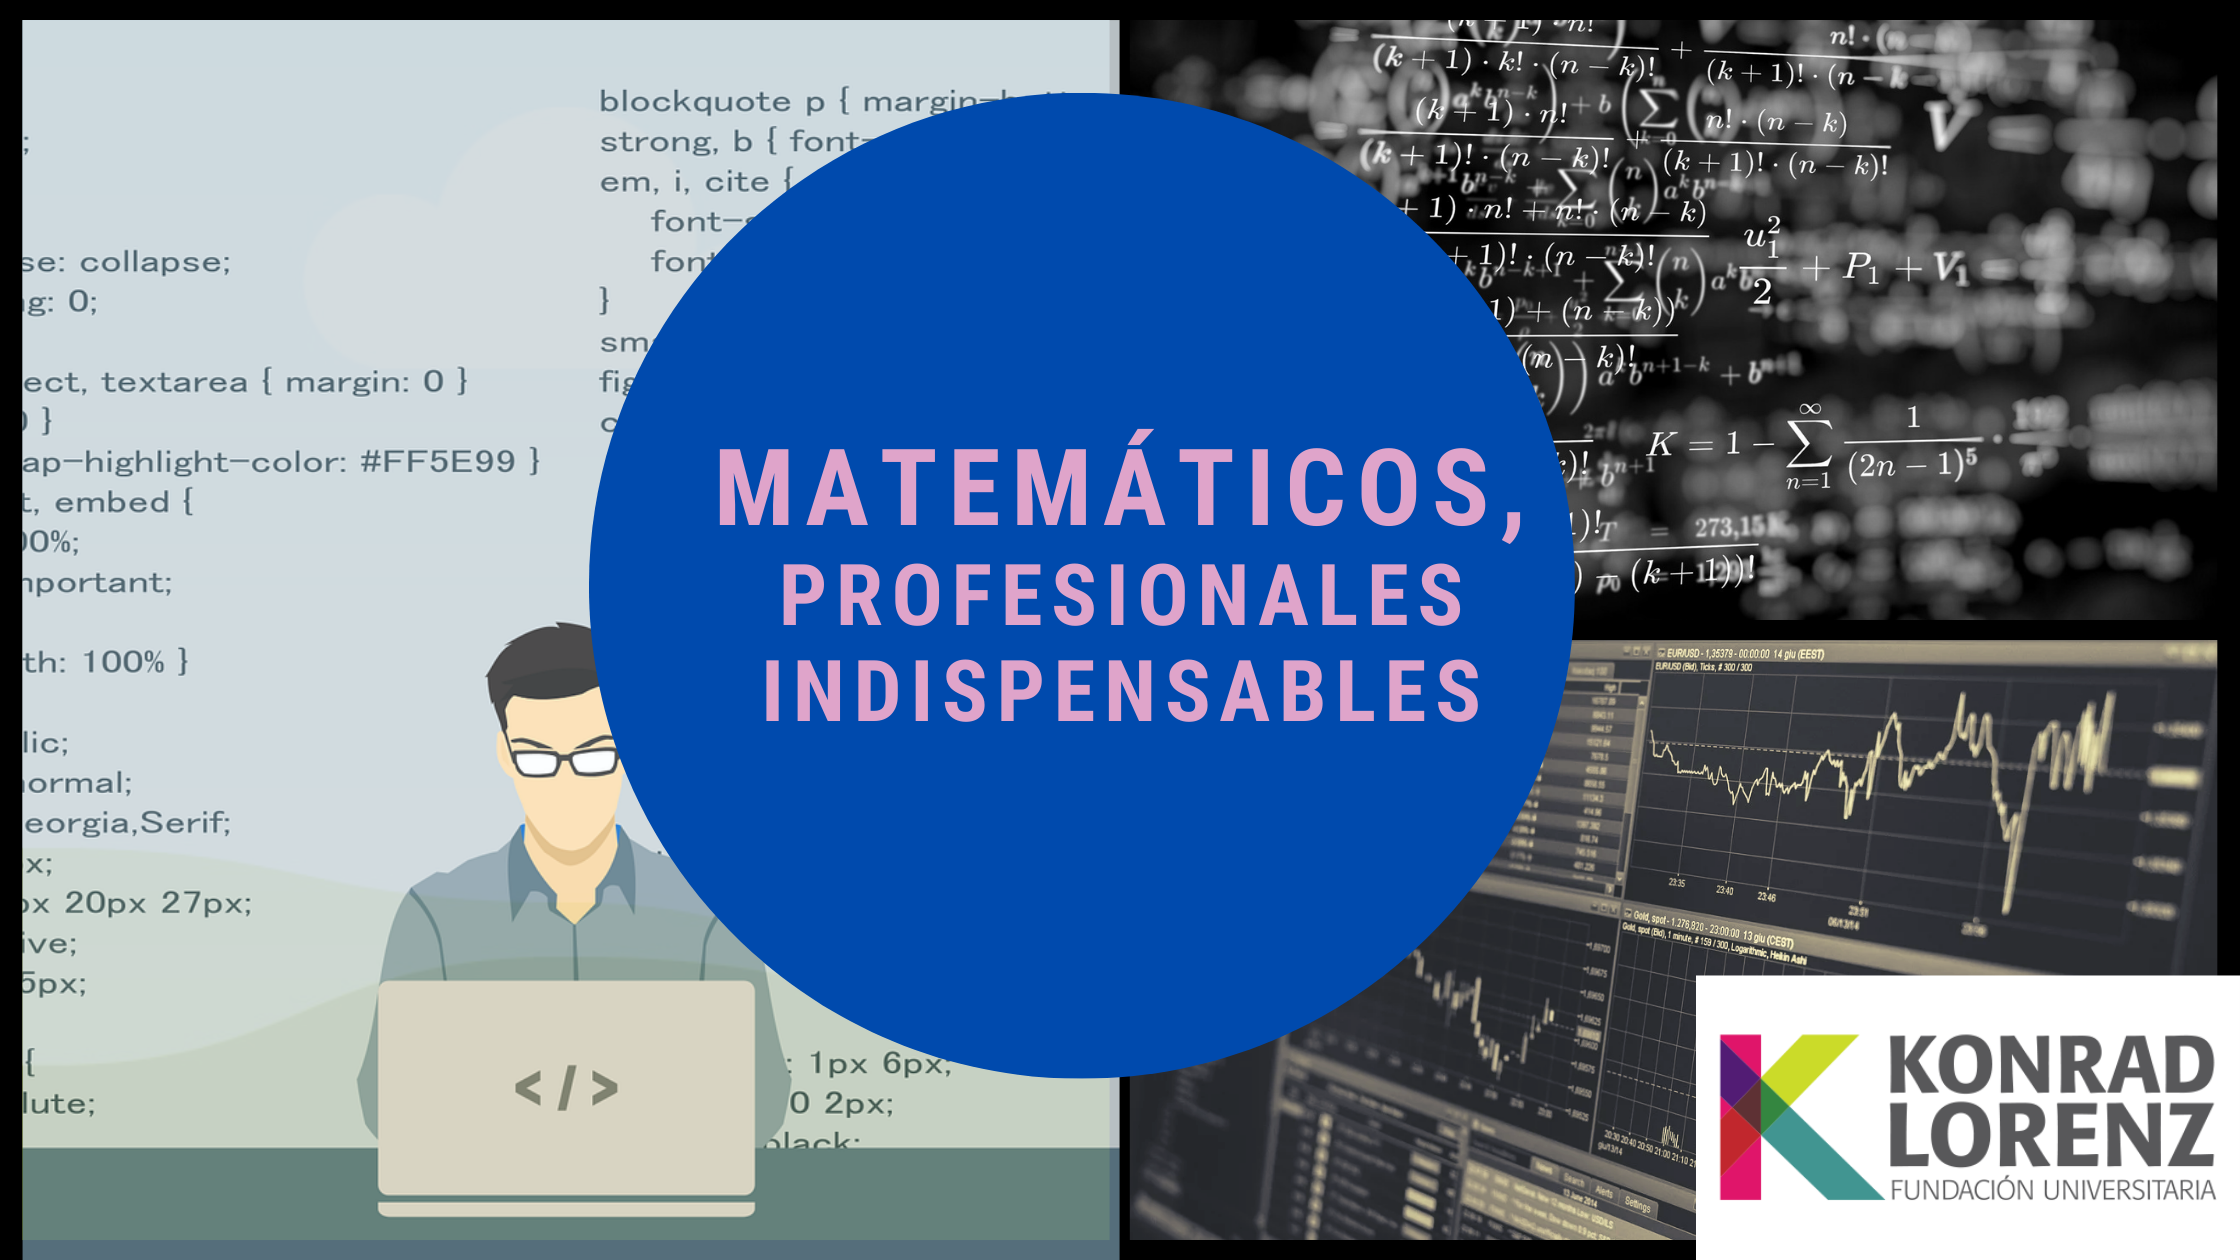 MATEMÁTICOS, PROFESIONALES INDISPENSABLES